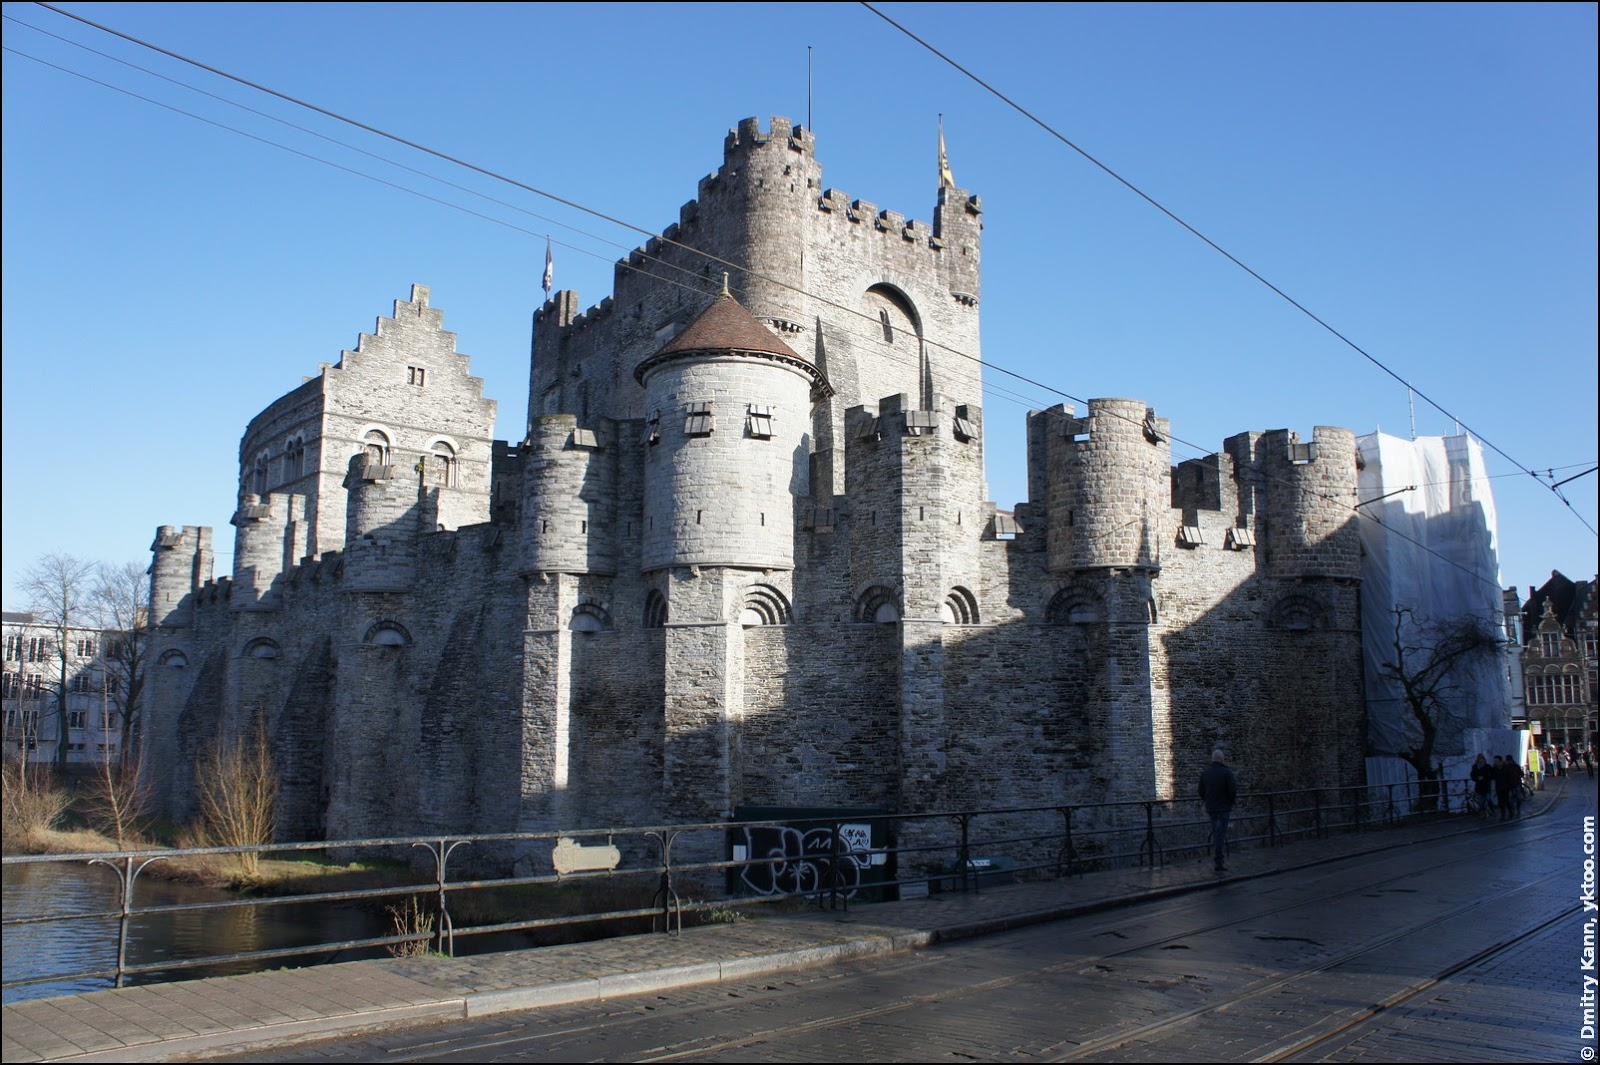 The Gravensteen Castle.